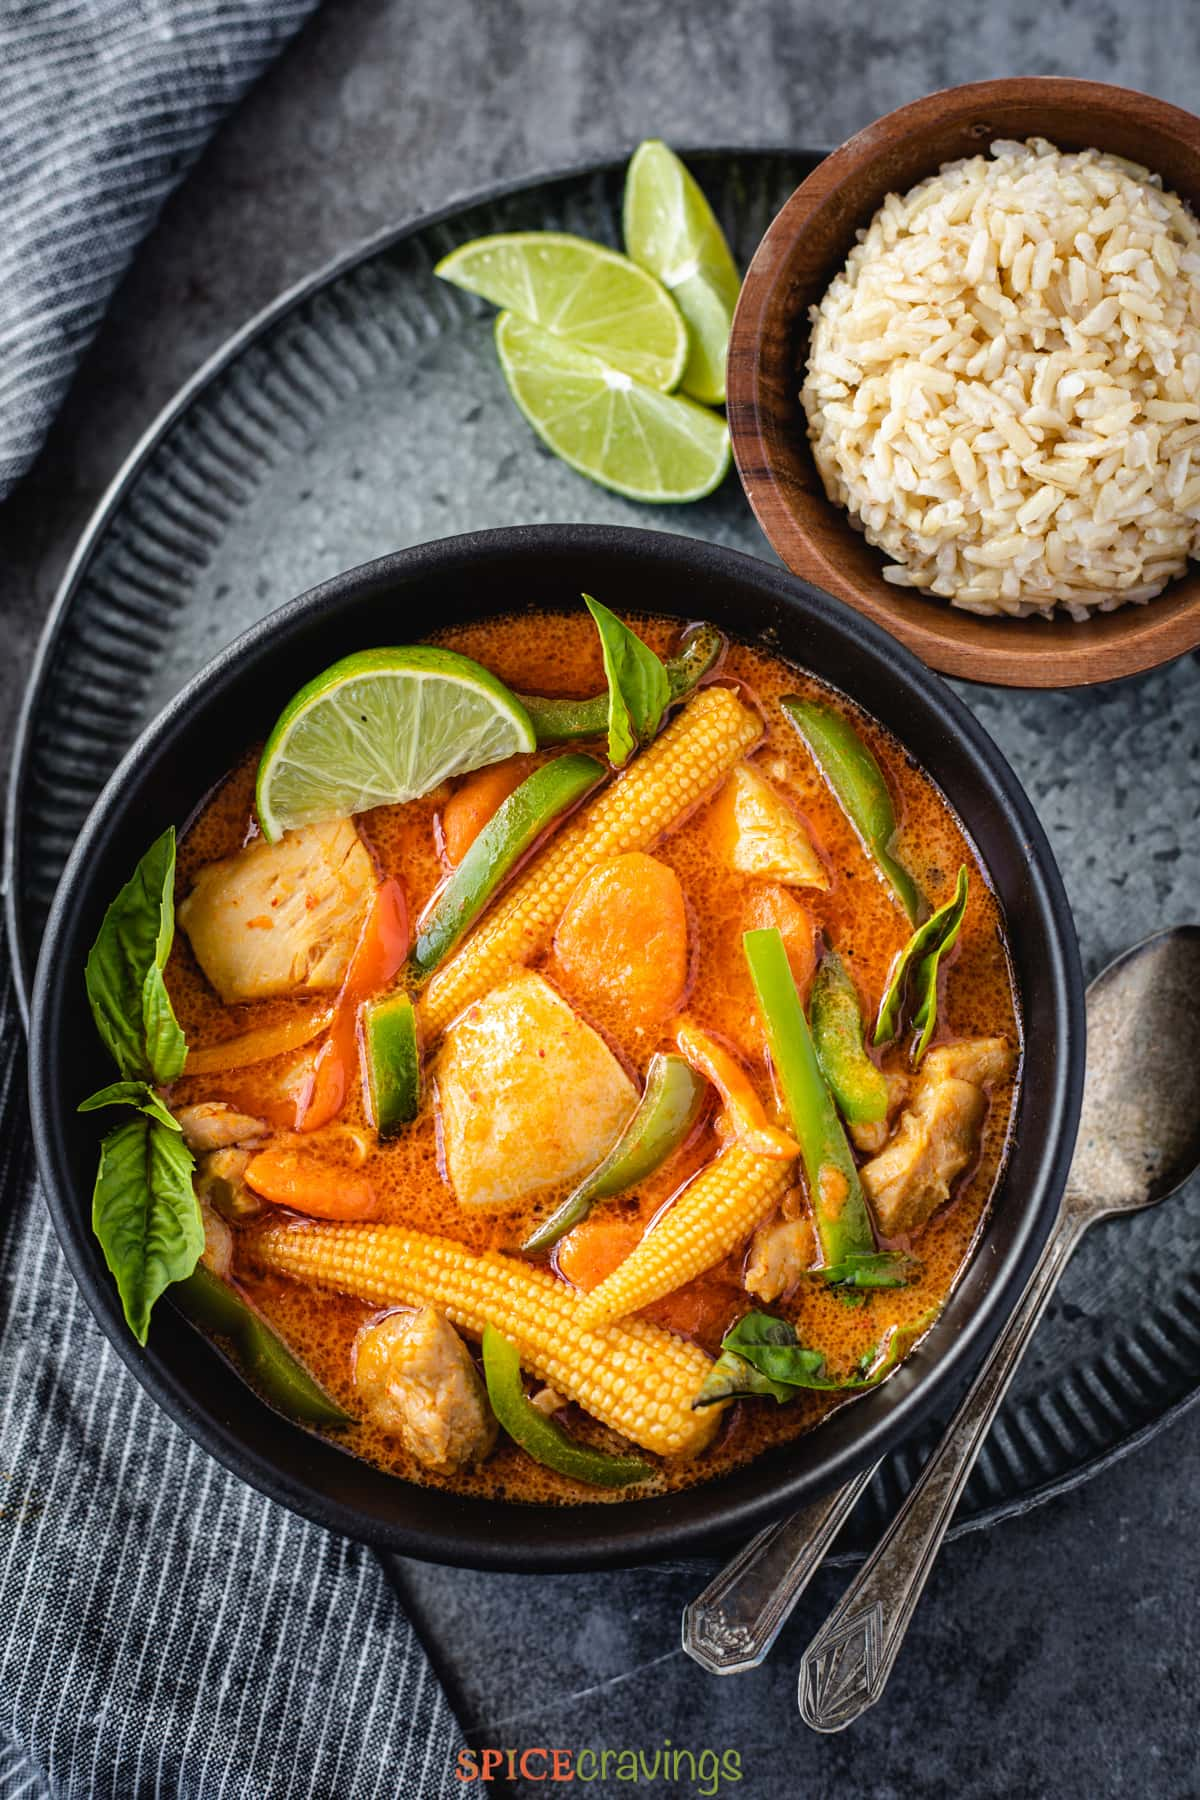 Thai panang curry served with brown jasmine rice in a grey bowl